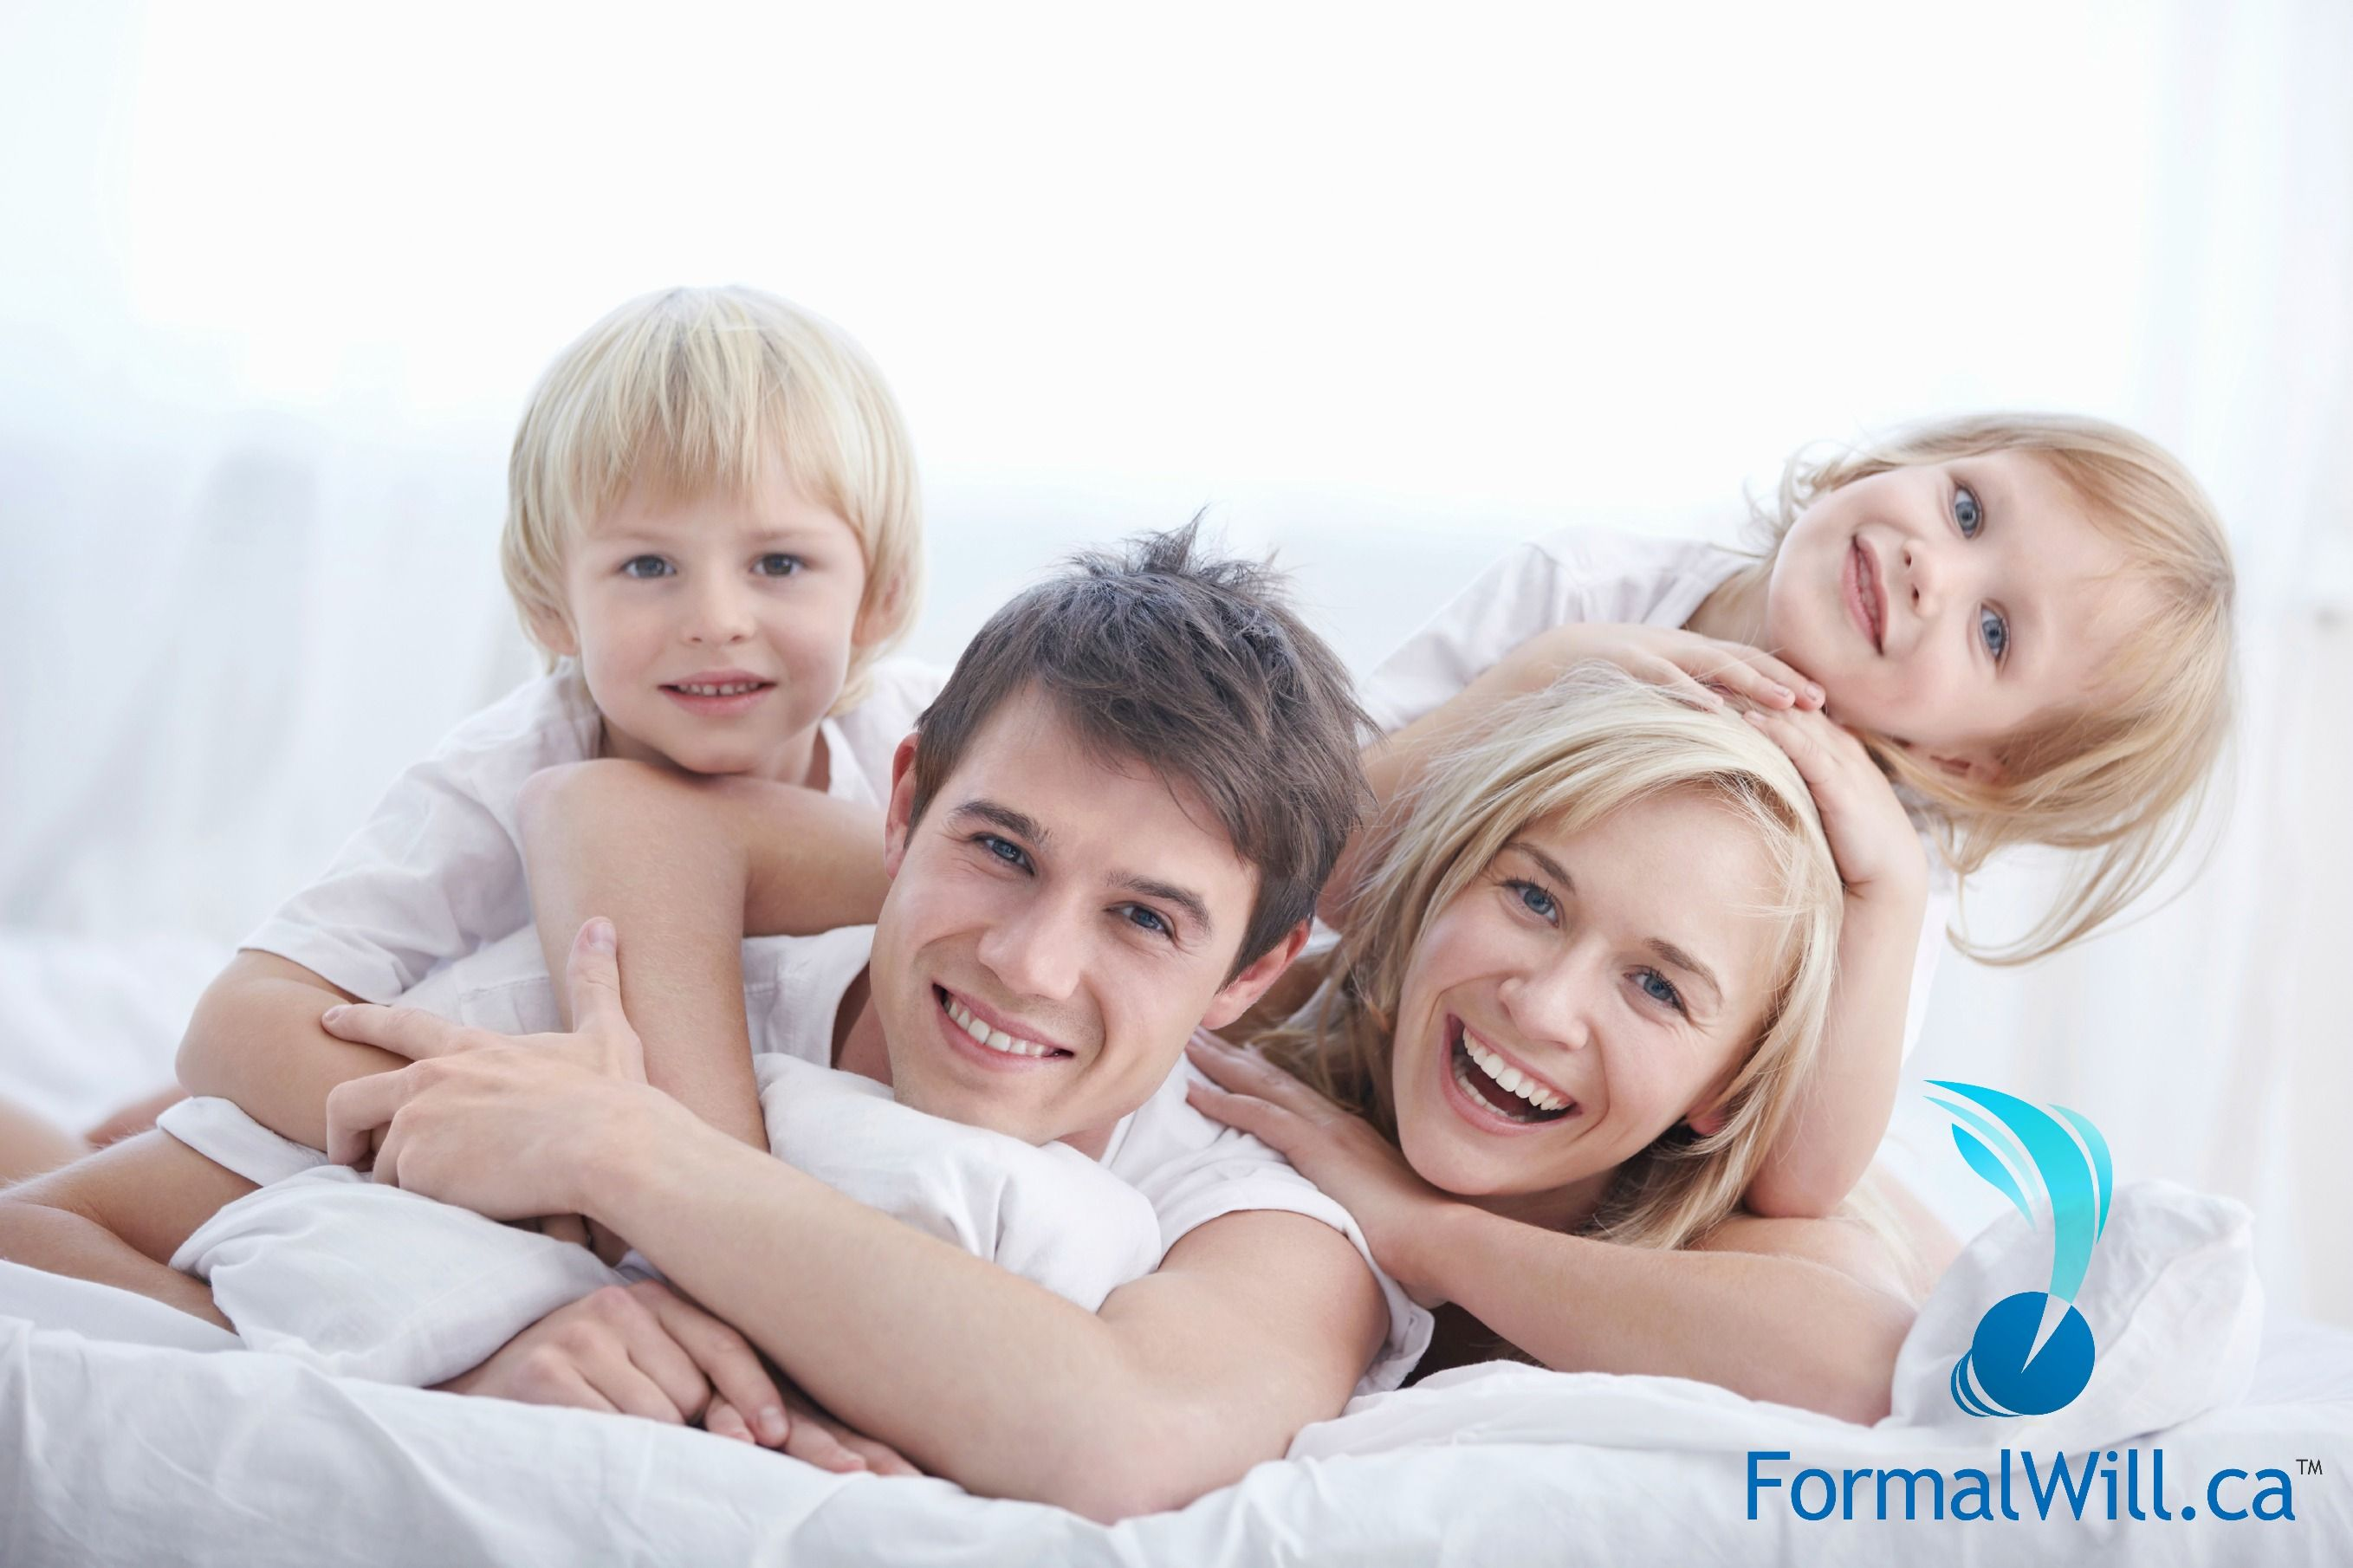 Child Life Insurance Quotes Get A Free Life Insurance Quote From Formalwill.ca Click Here To